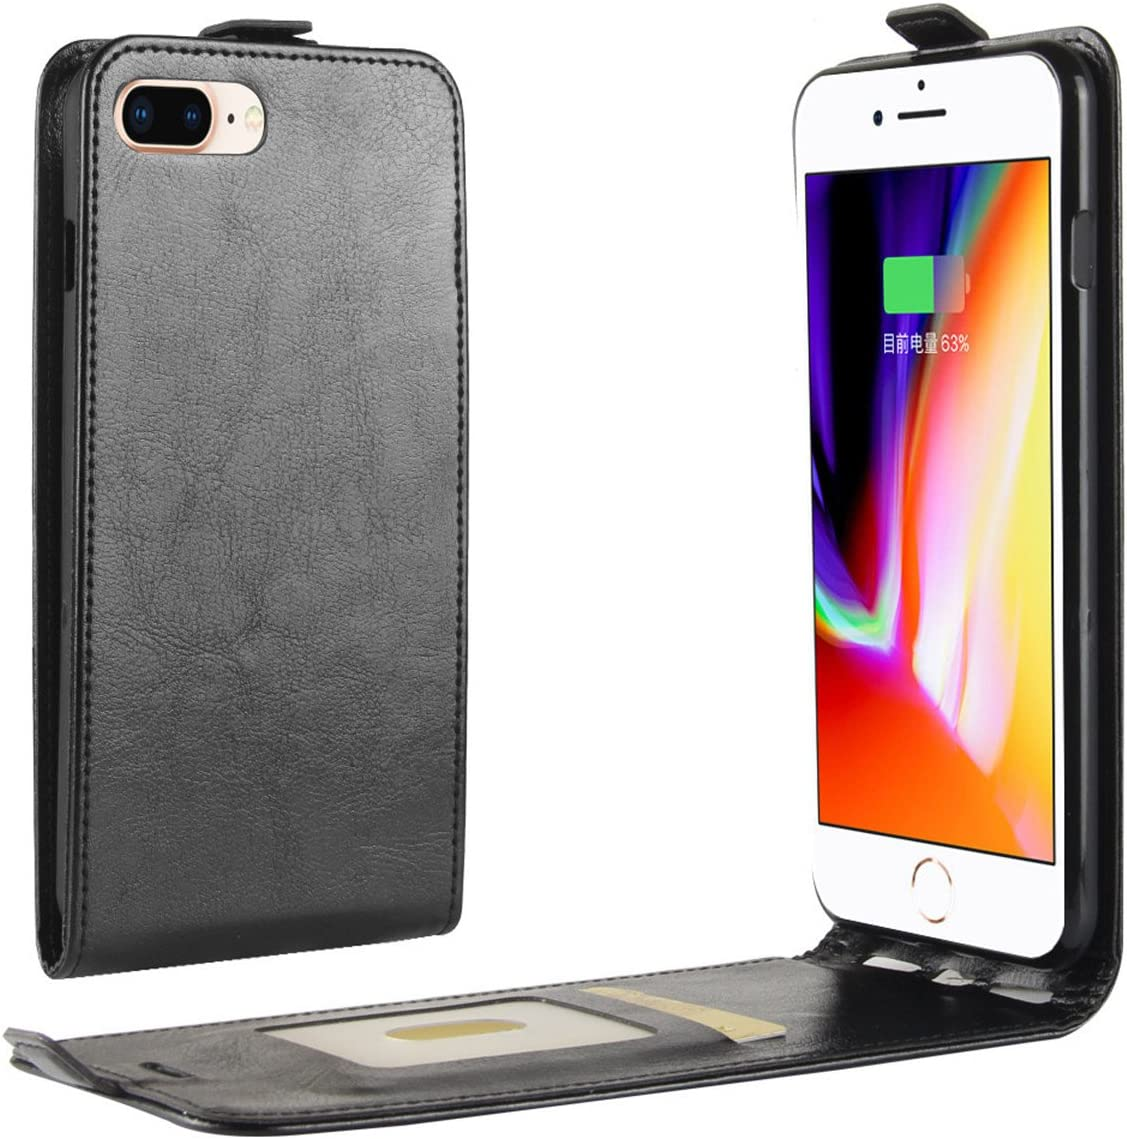 iPhone 8 Plus Case,iPhone 7 Plus Case,Gift_Source [Magnetic Closure] PU Leather Vertical Flip Phone Case Slim Fit Folio Up-Down Open Cover with Card Slots for iPhone 8 Plus/iPhone 7 Plus 5.5